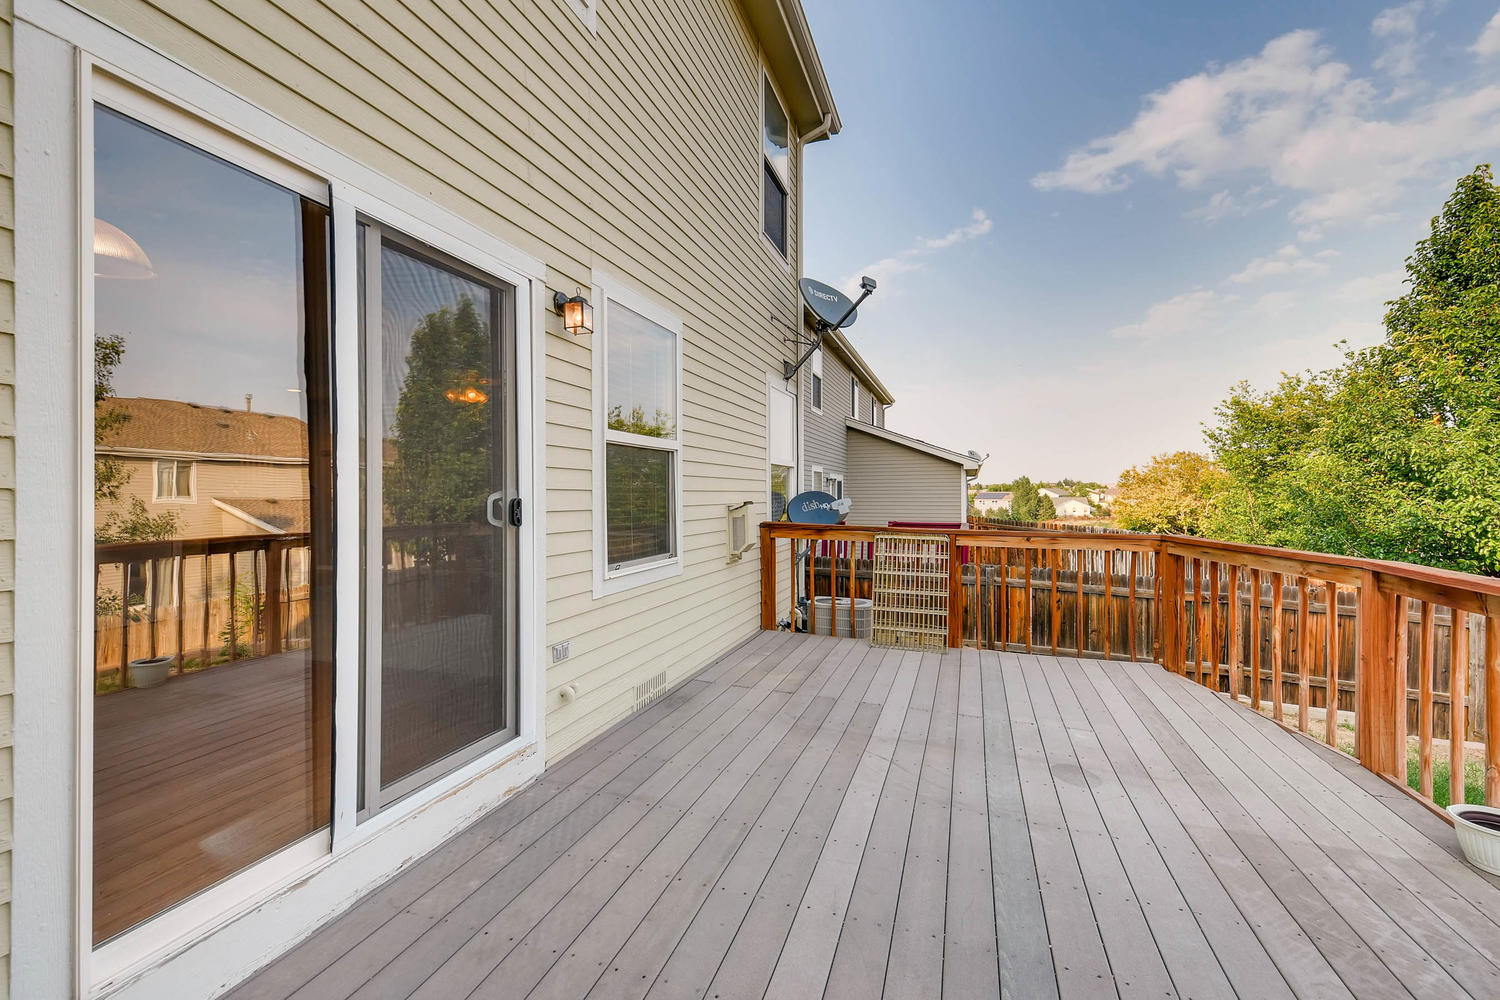 Photo of 5346 S Picadilly Ct, Aurora, CO, 80015